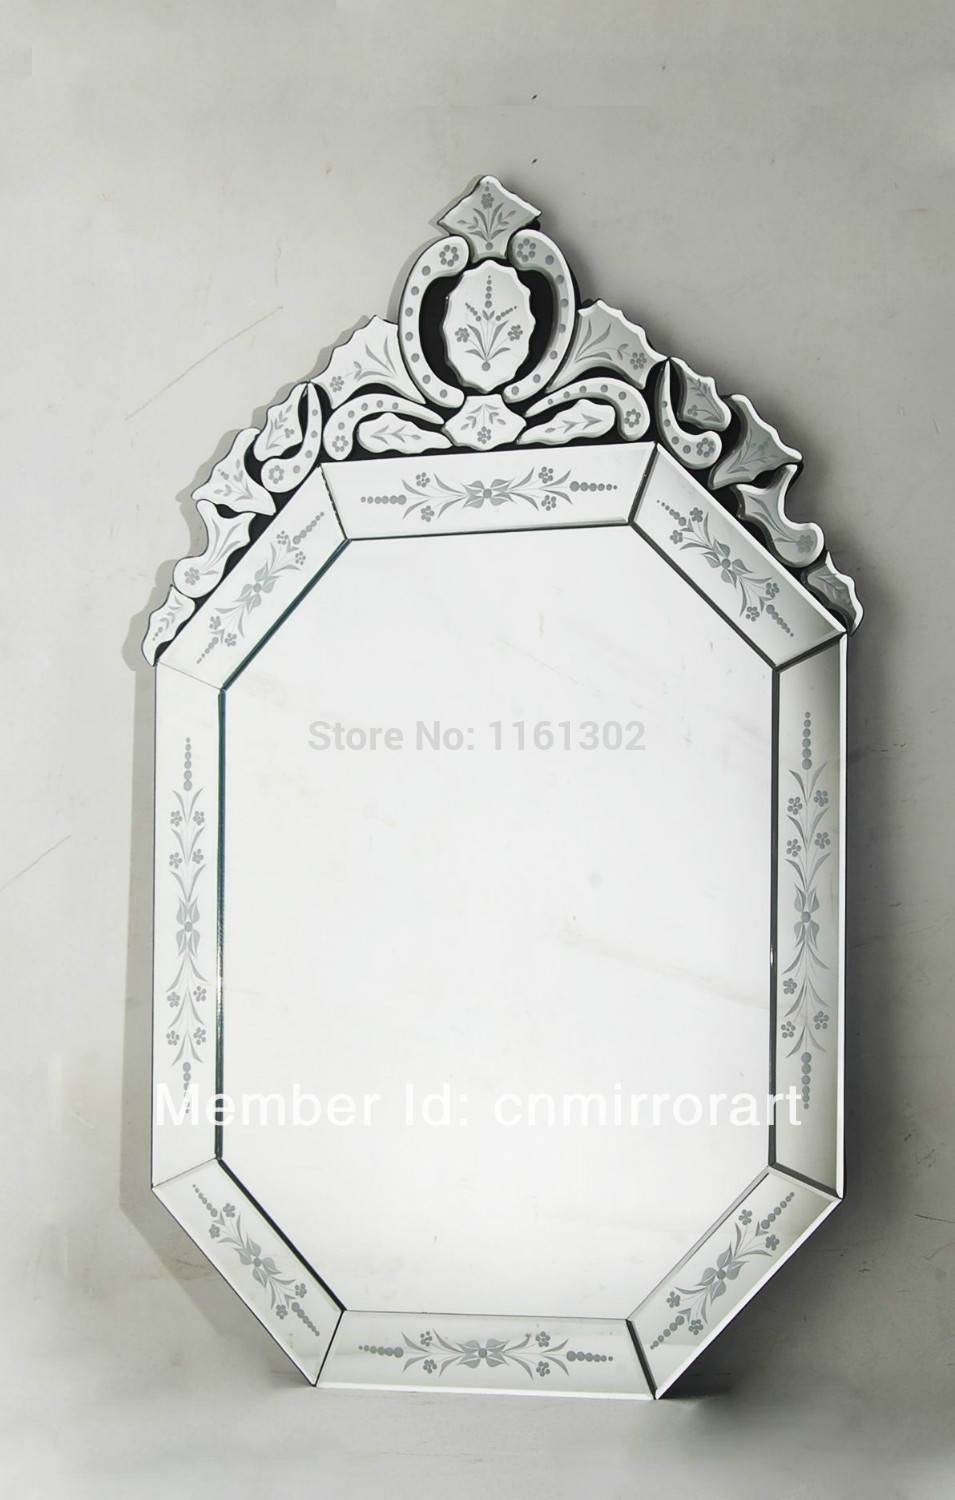 Online Get Cheap Venetian Wall Mirror -Aliexpress | Alibaba Group for Venetian Heart Mirrors (Image 20 of 25)